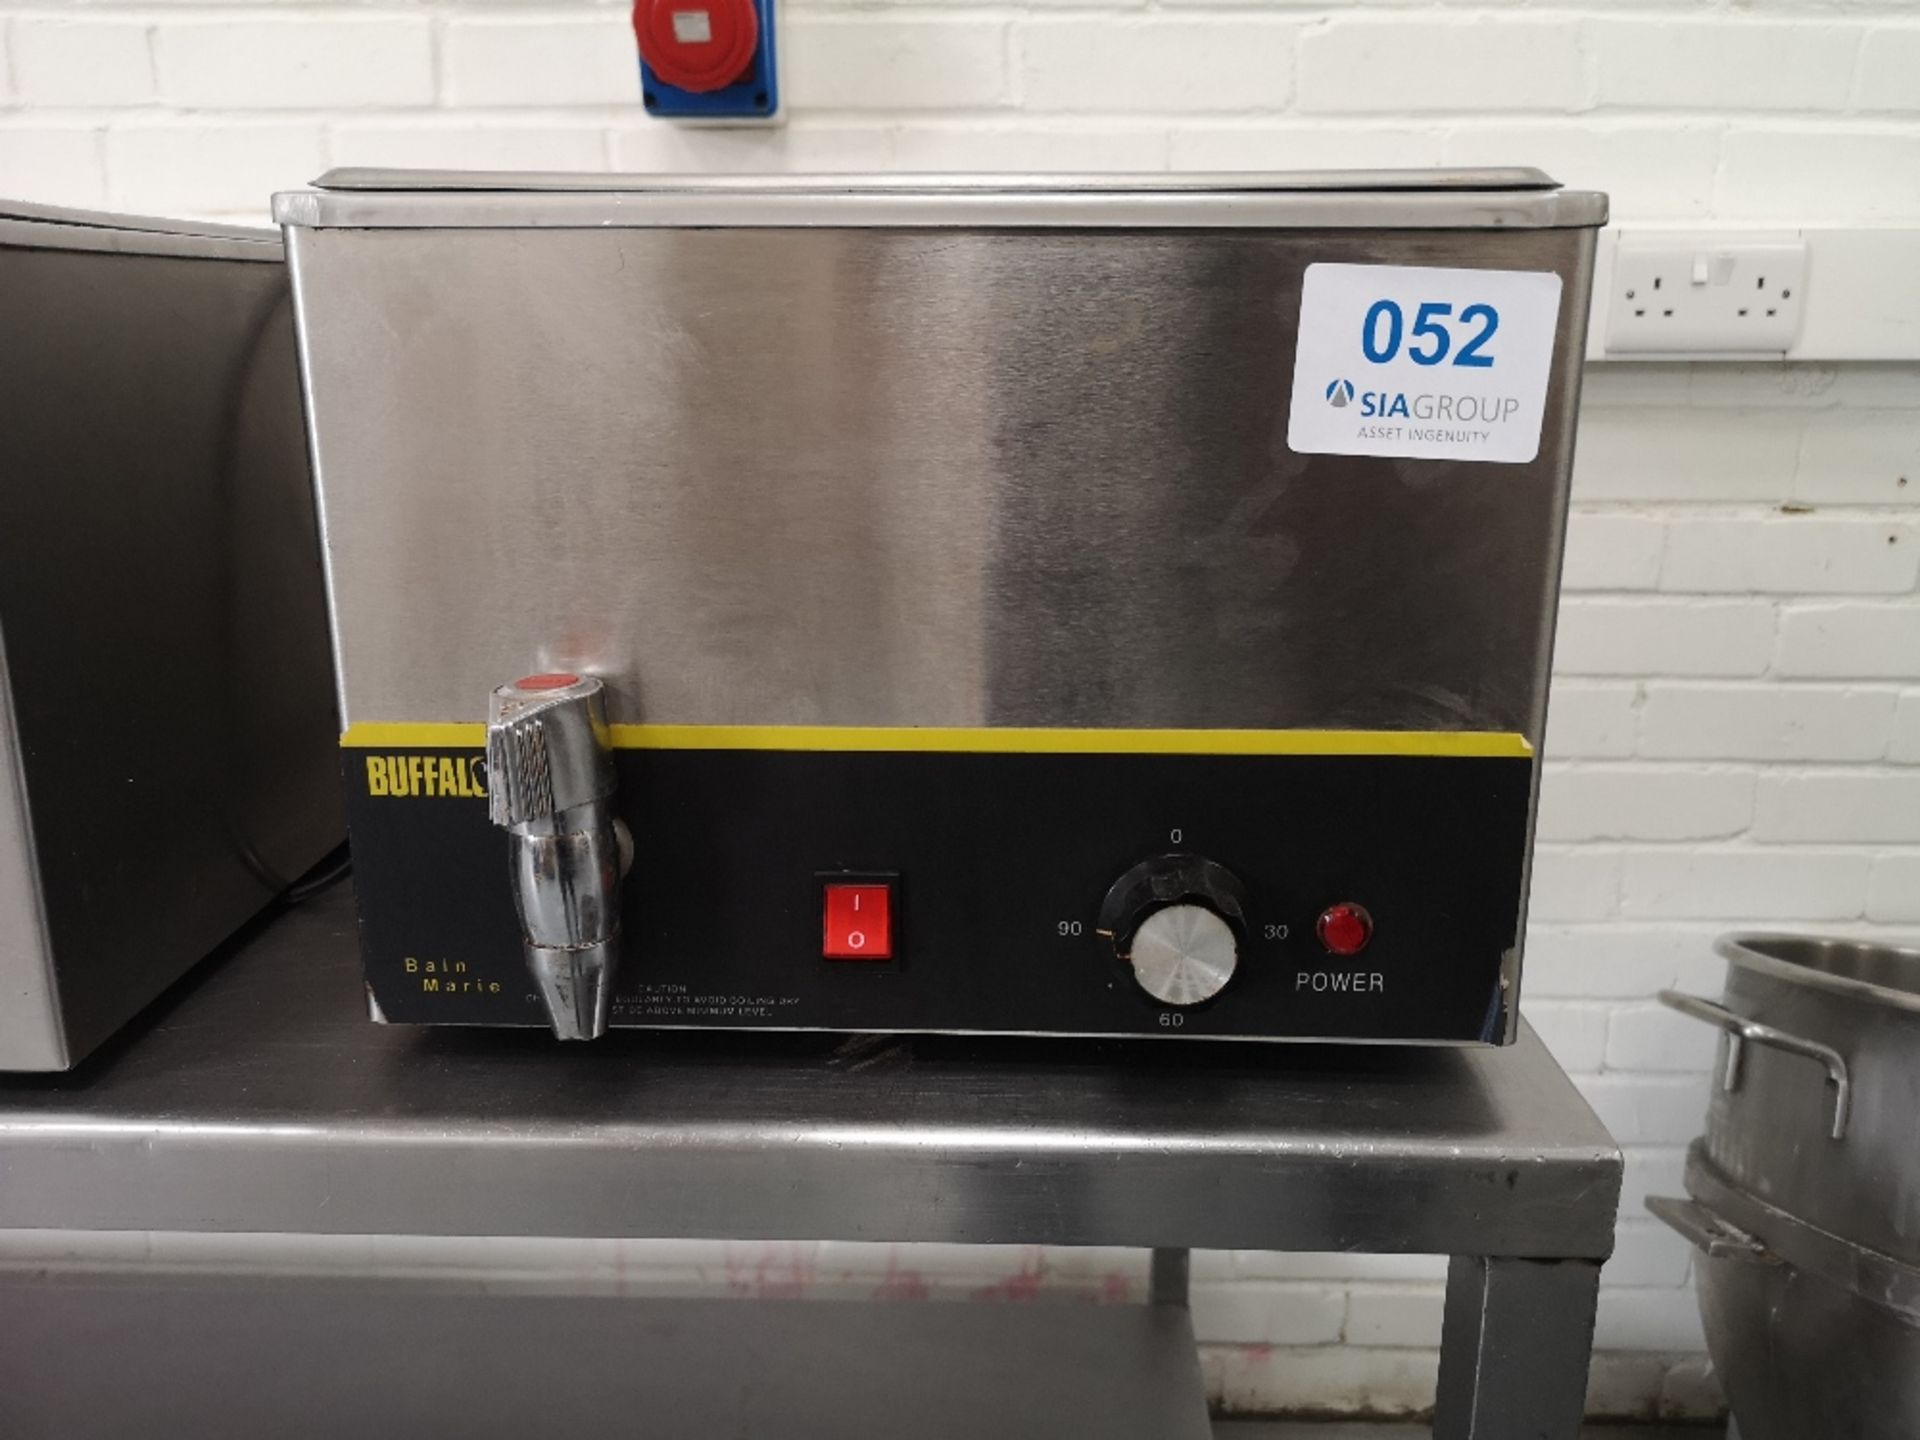 Buffalo S047 Wet Bain Marie With Tap - Image 3 of 4